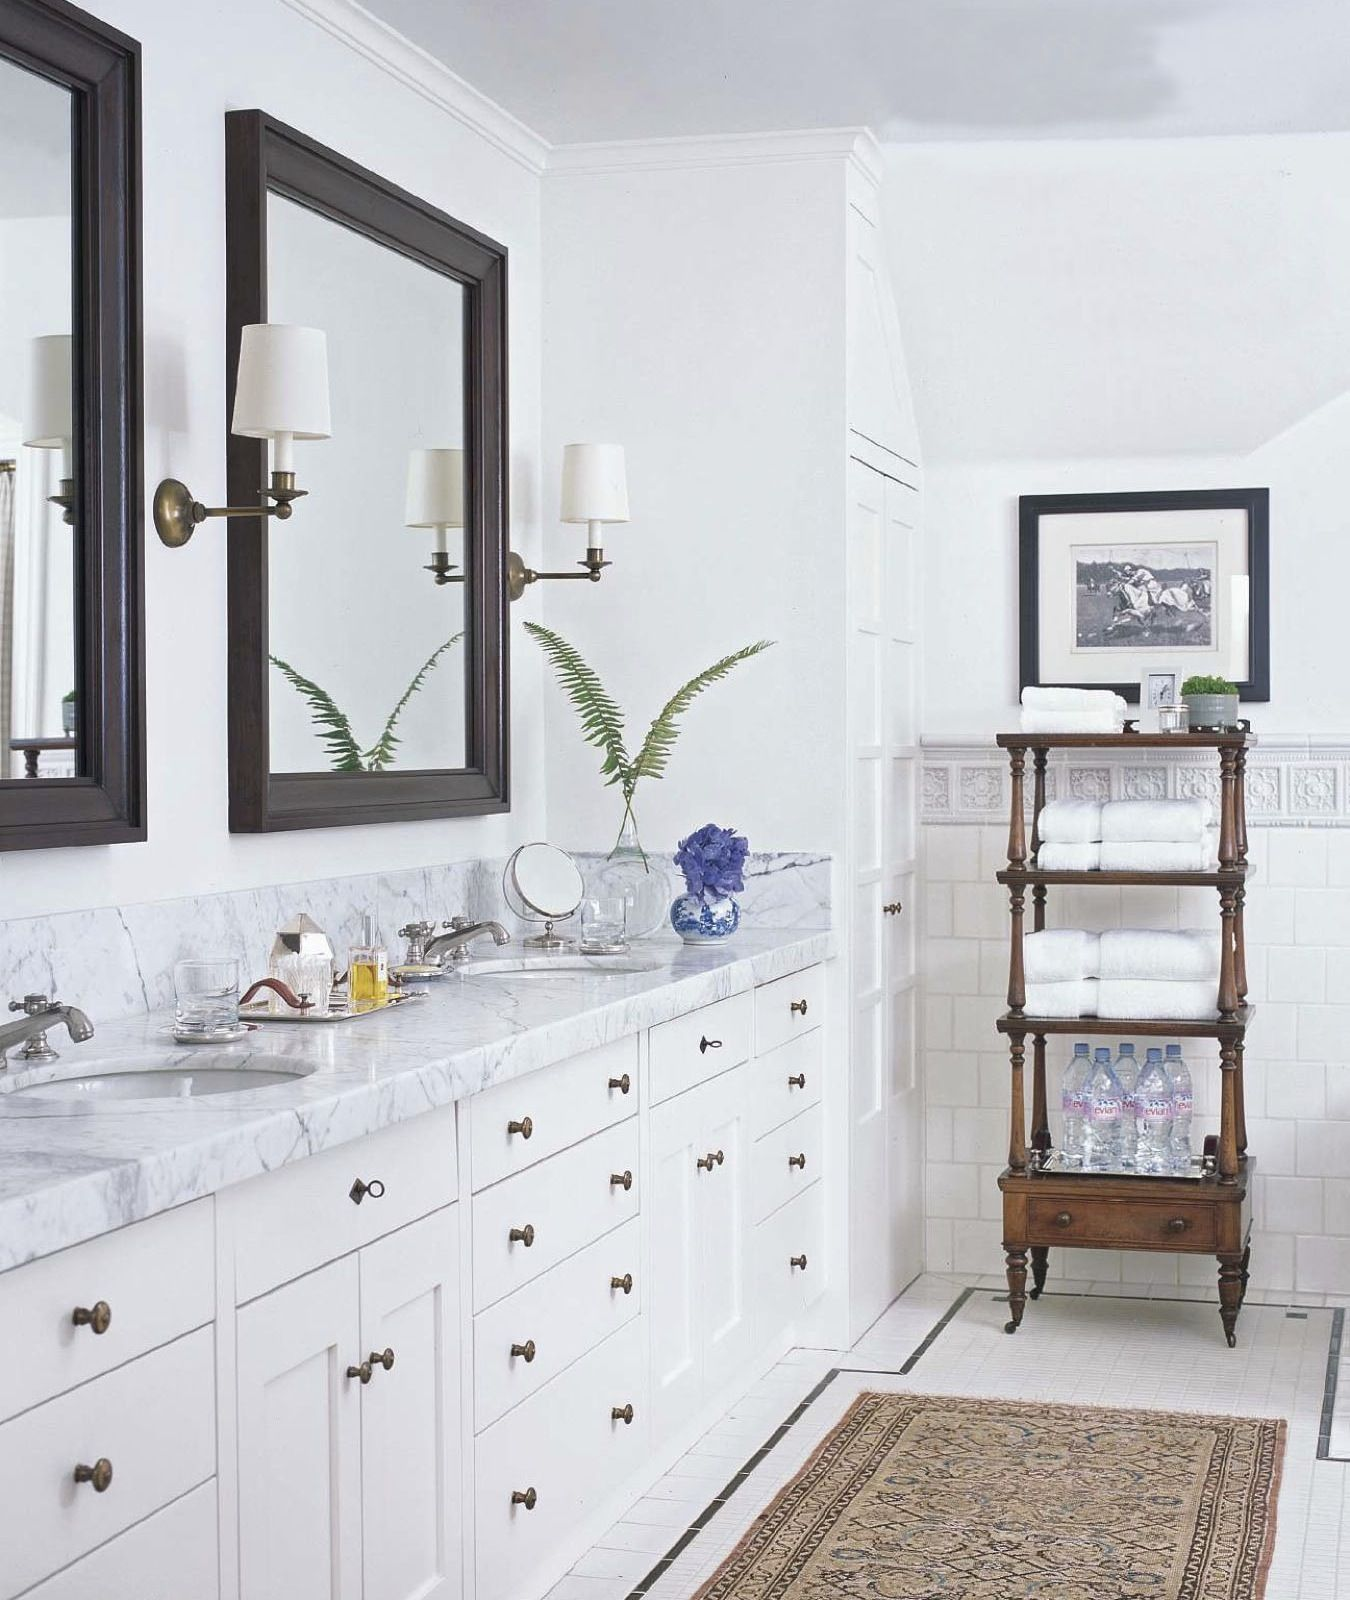 Private residence in british colonial style traditional bathroom - Master Bath British Colonial White Cabinet Dark Mirror Natural Elements